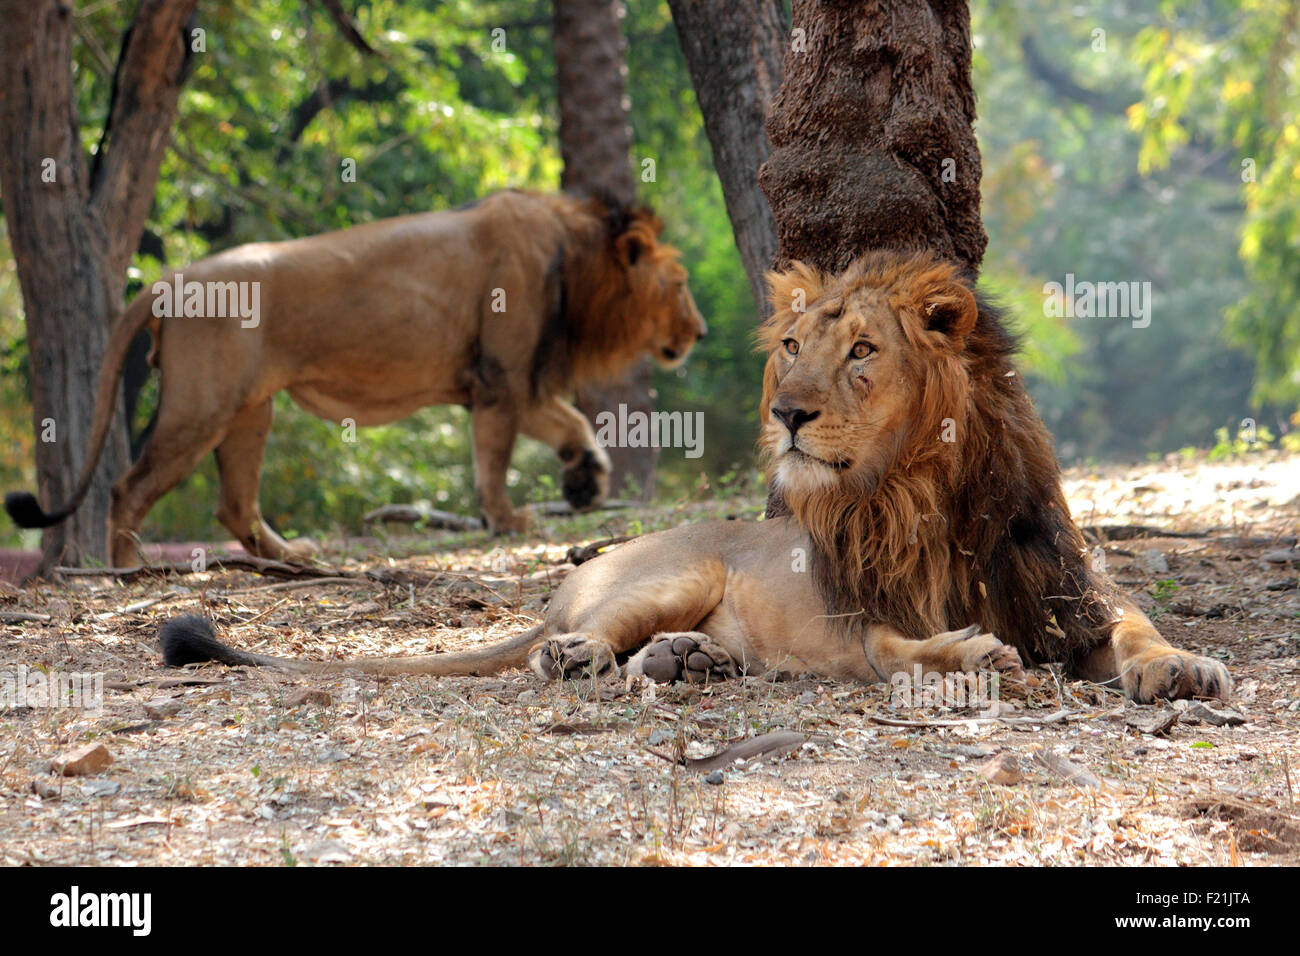 Indian Lion Gir forest Gujarat, India - Stock Image